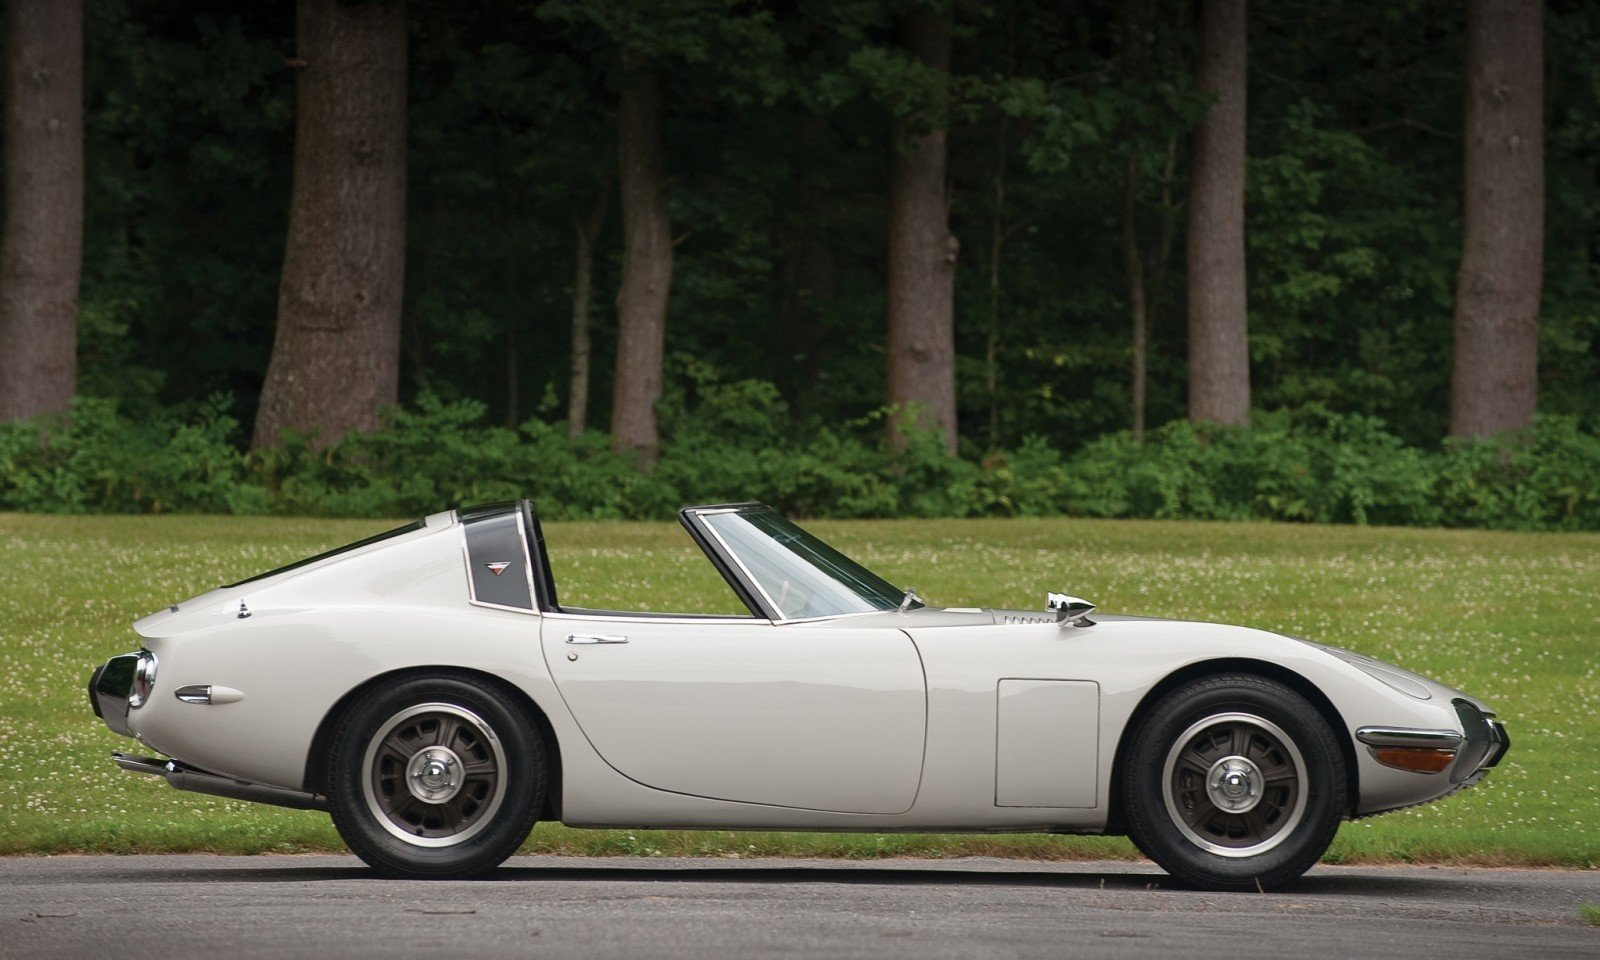 1966 Toyota 2000GT Targa - Bond Movie Car Idea Realized, But Earned Only $200k in RM Auctions London 2010 25